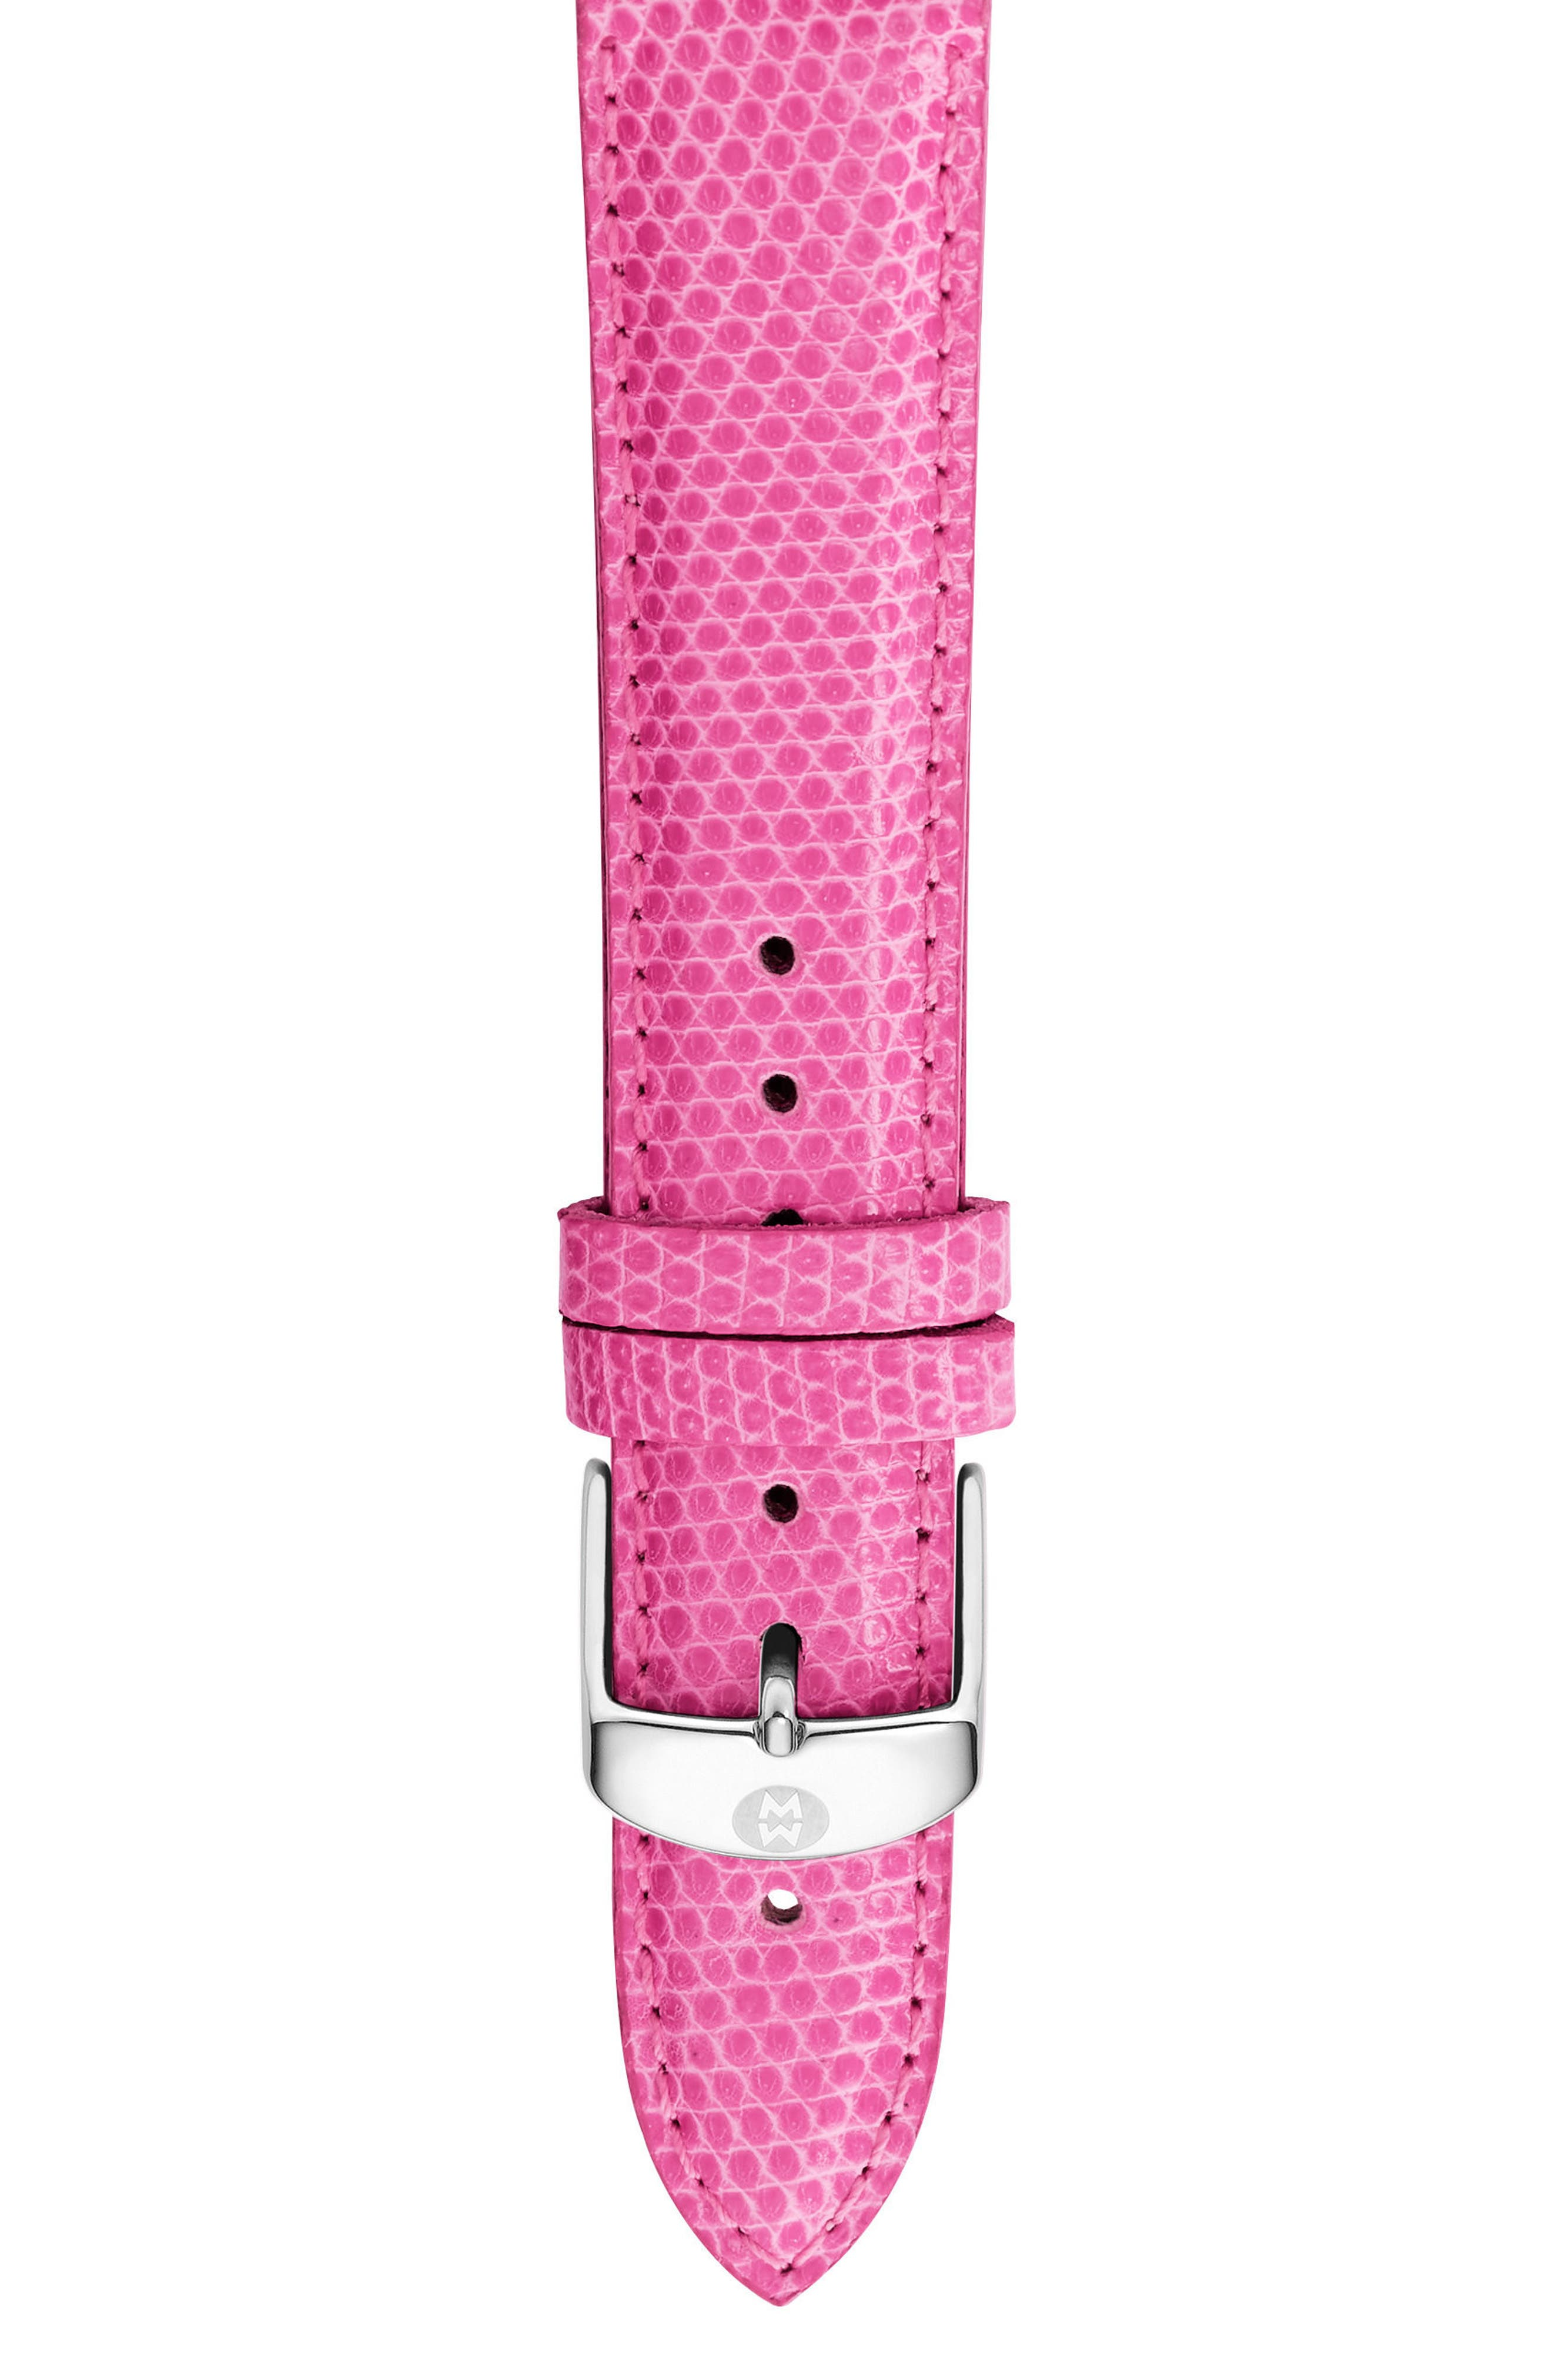 Alternate Image 1 Selected - MICHELE 16mm Lizardskin Watch Strap